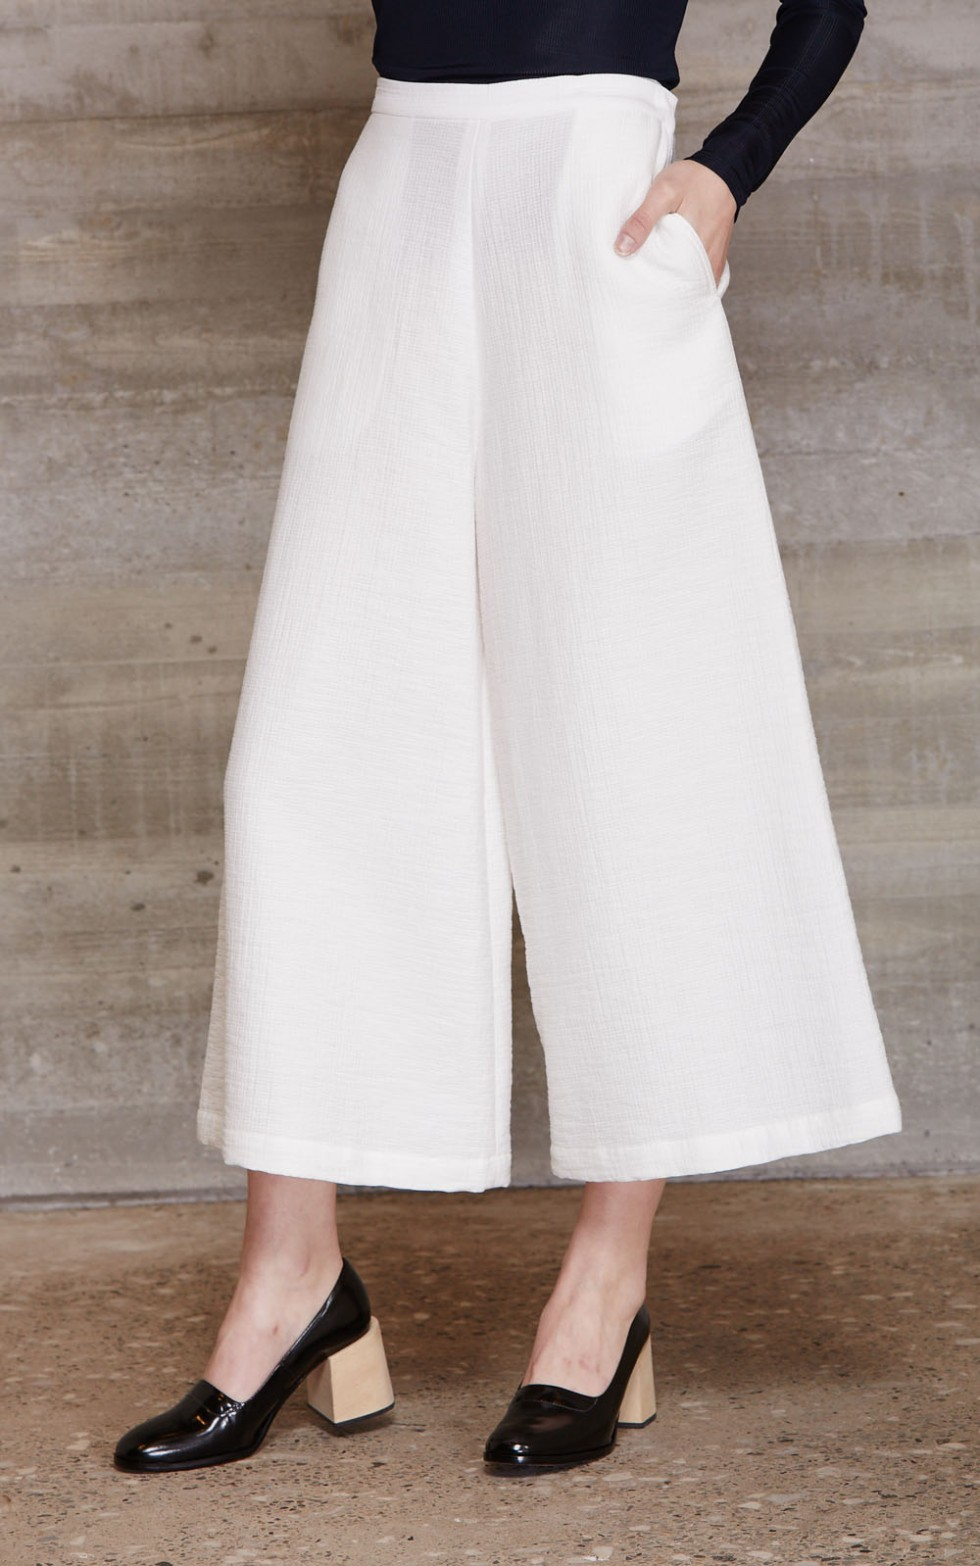 Rachel Comey Limber Pant. Available in multiple colors. Rachel Comey. $449.